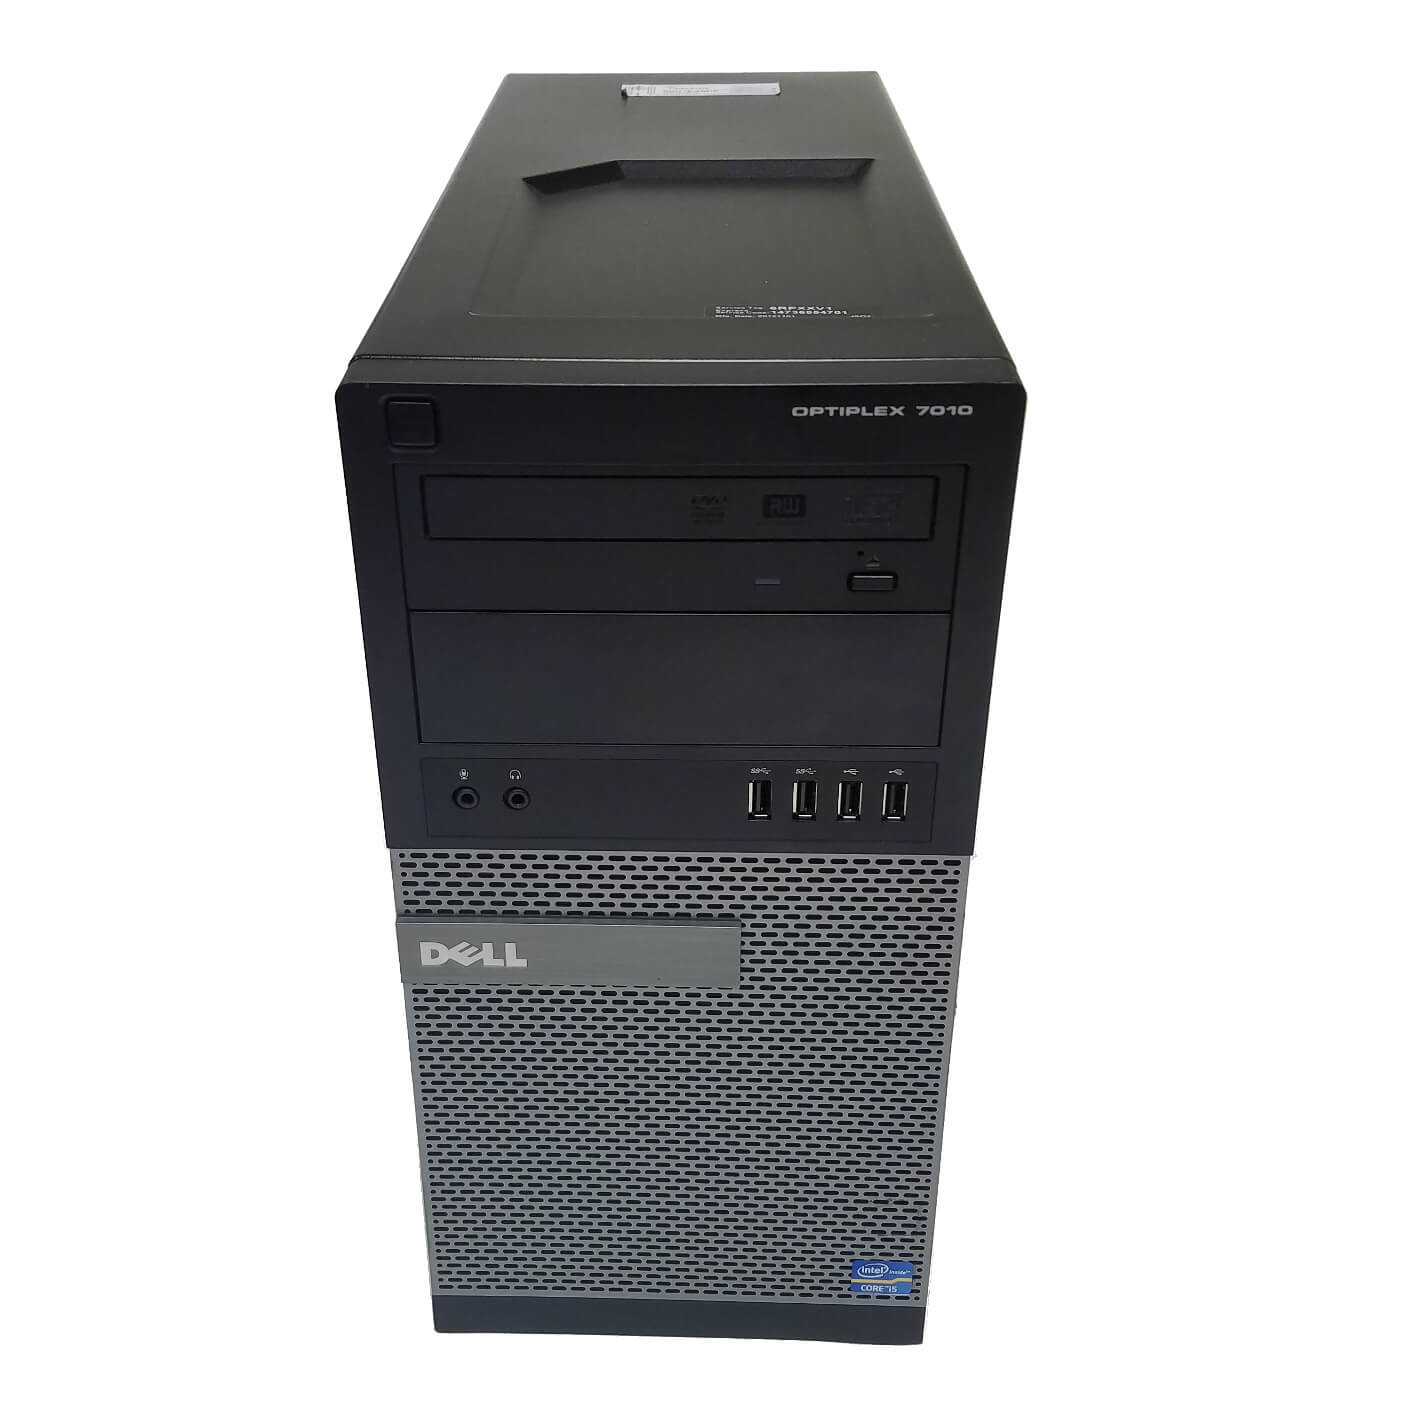 DELL 7010 TOWER I5-3470 3,2 / 16384 MB DDR3 / 120 SSD NOWY + 500 GB / DVD-RW / WINDOWS 10 PRO / ZOTAC GEFORCE GTX1060 6GB 192BIT